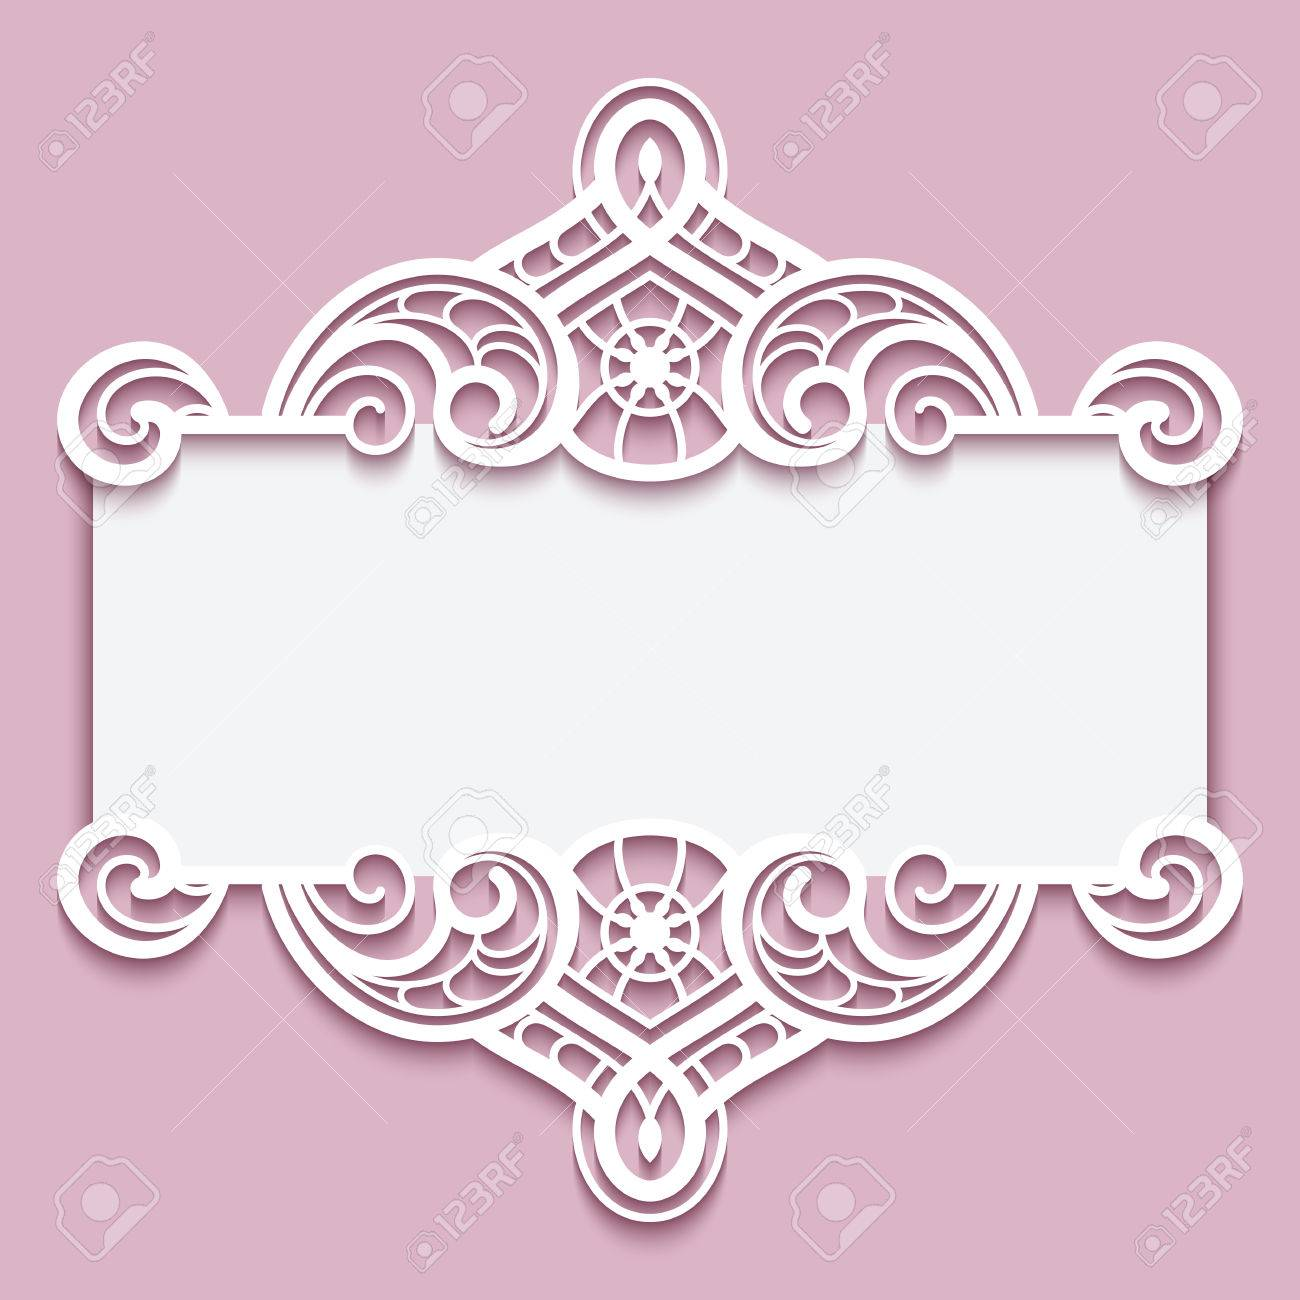 elegant cutout paper frame with lace border ornament greeting